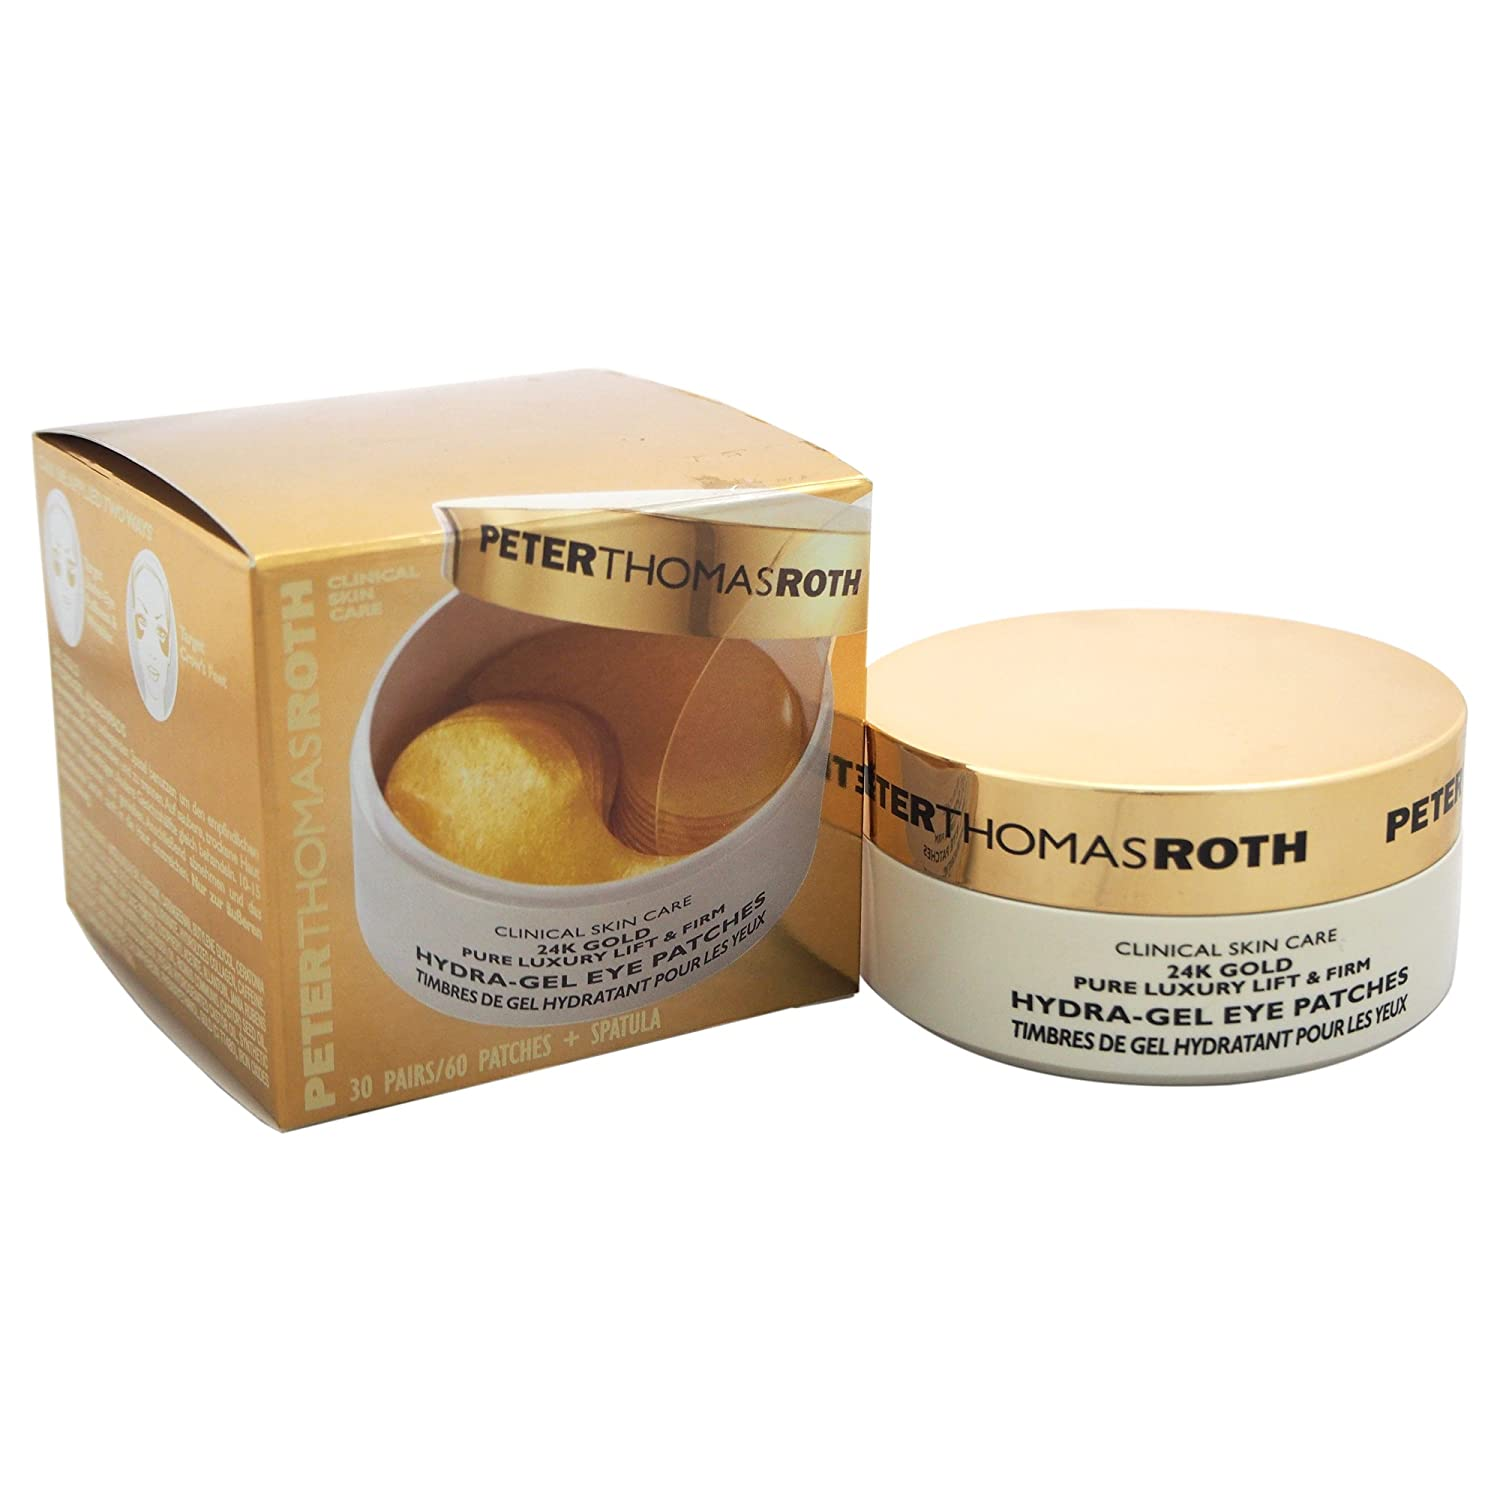 PETER THOMAS ROTH - 24k Gold Pure Luxury Lift and Firm Hydra-Gel Eye Patches 670367004043